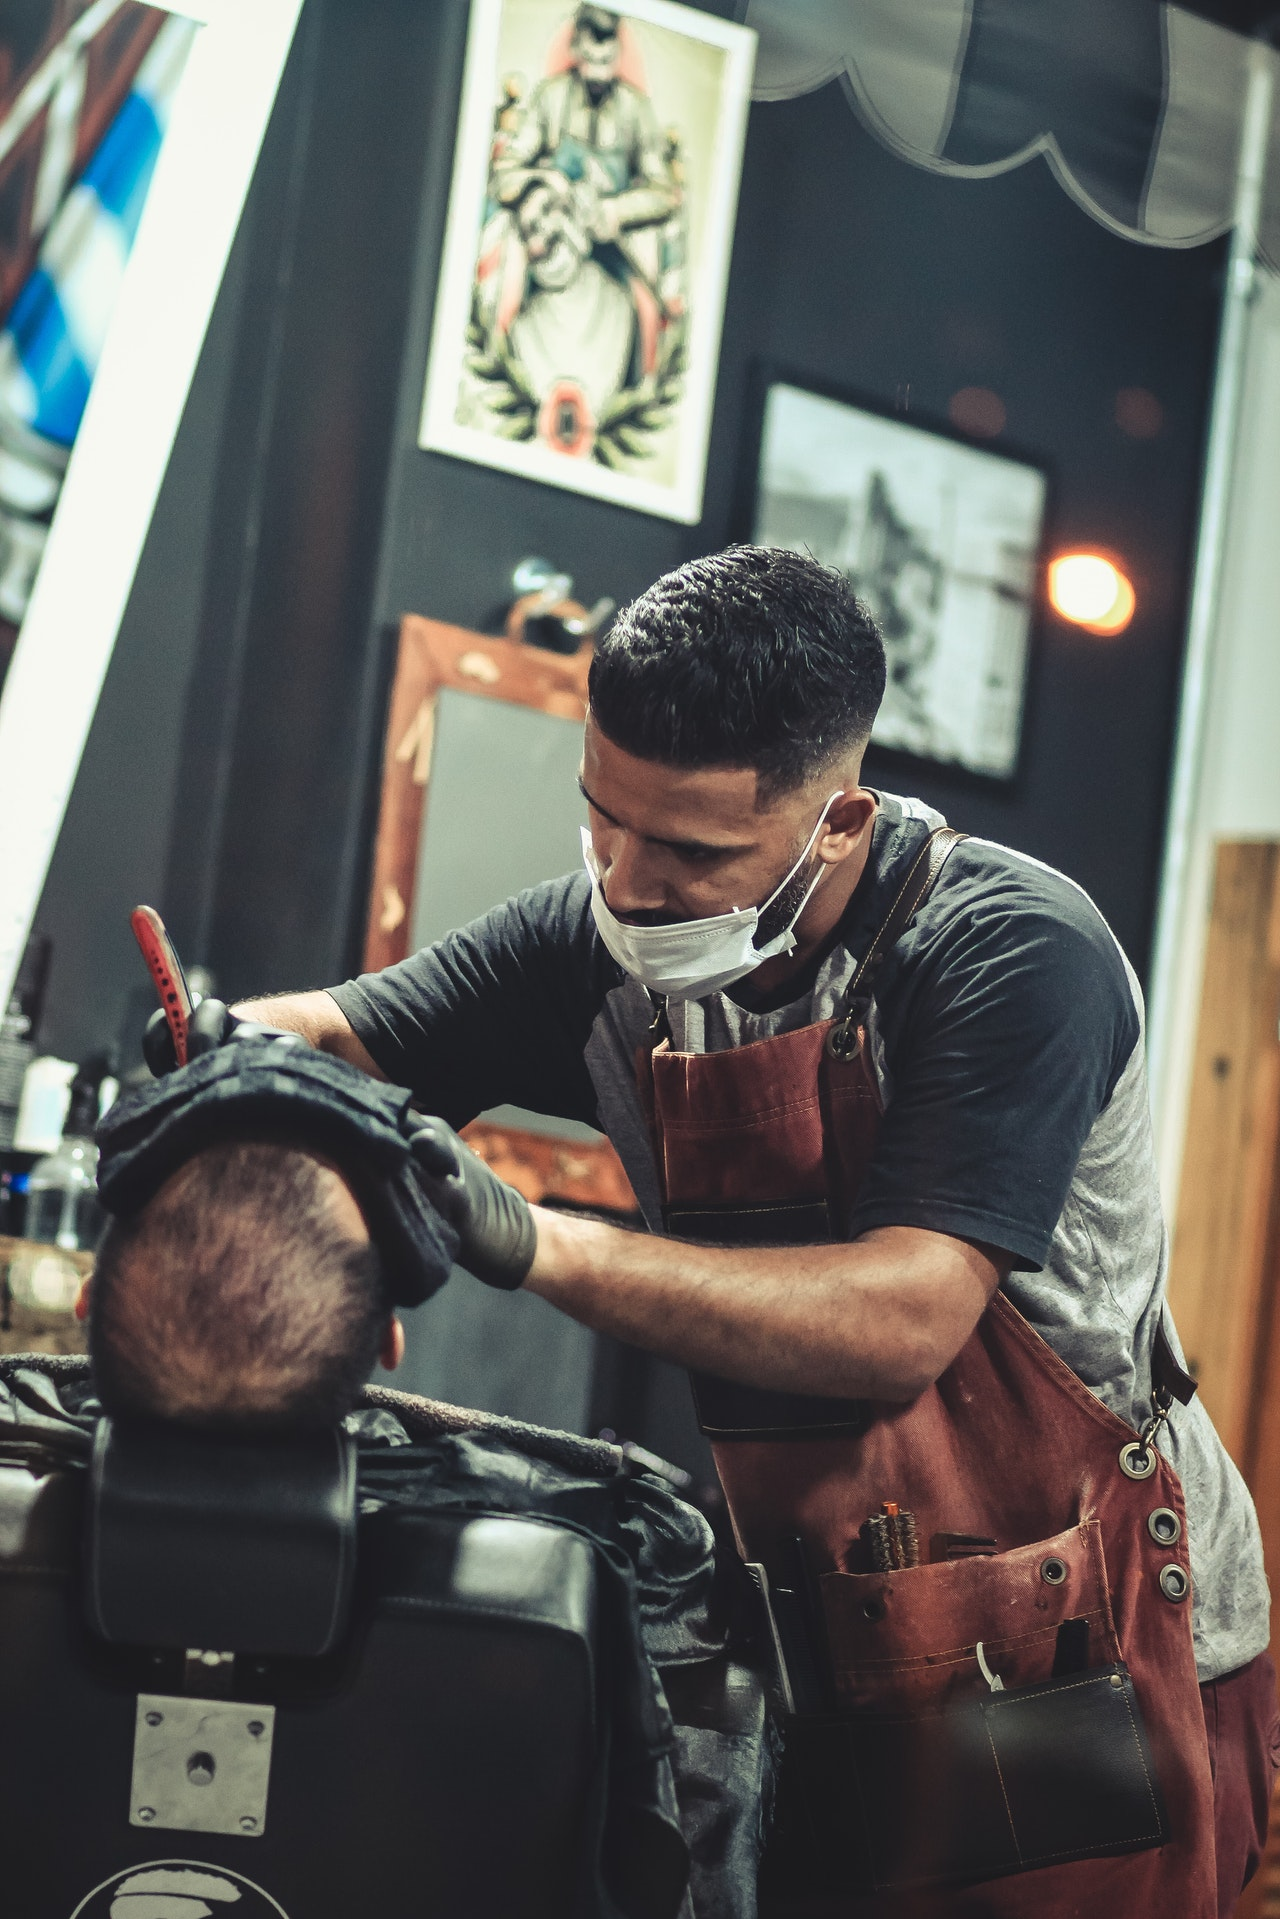 barber with a facemask doing a shave